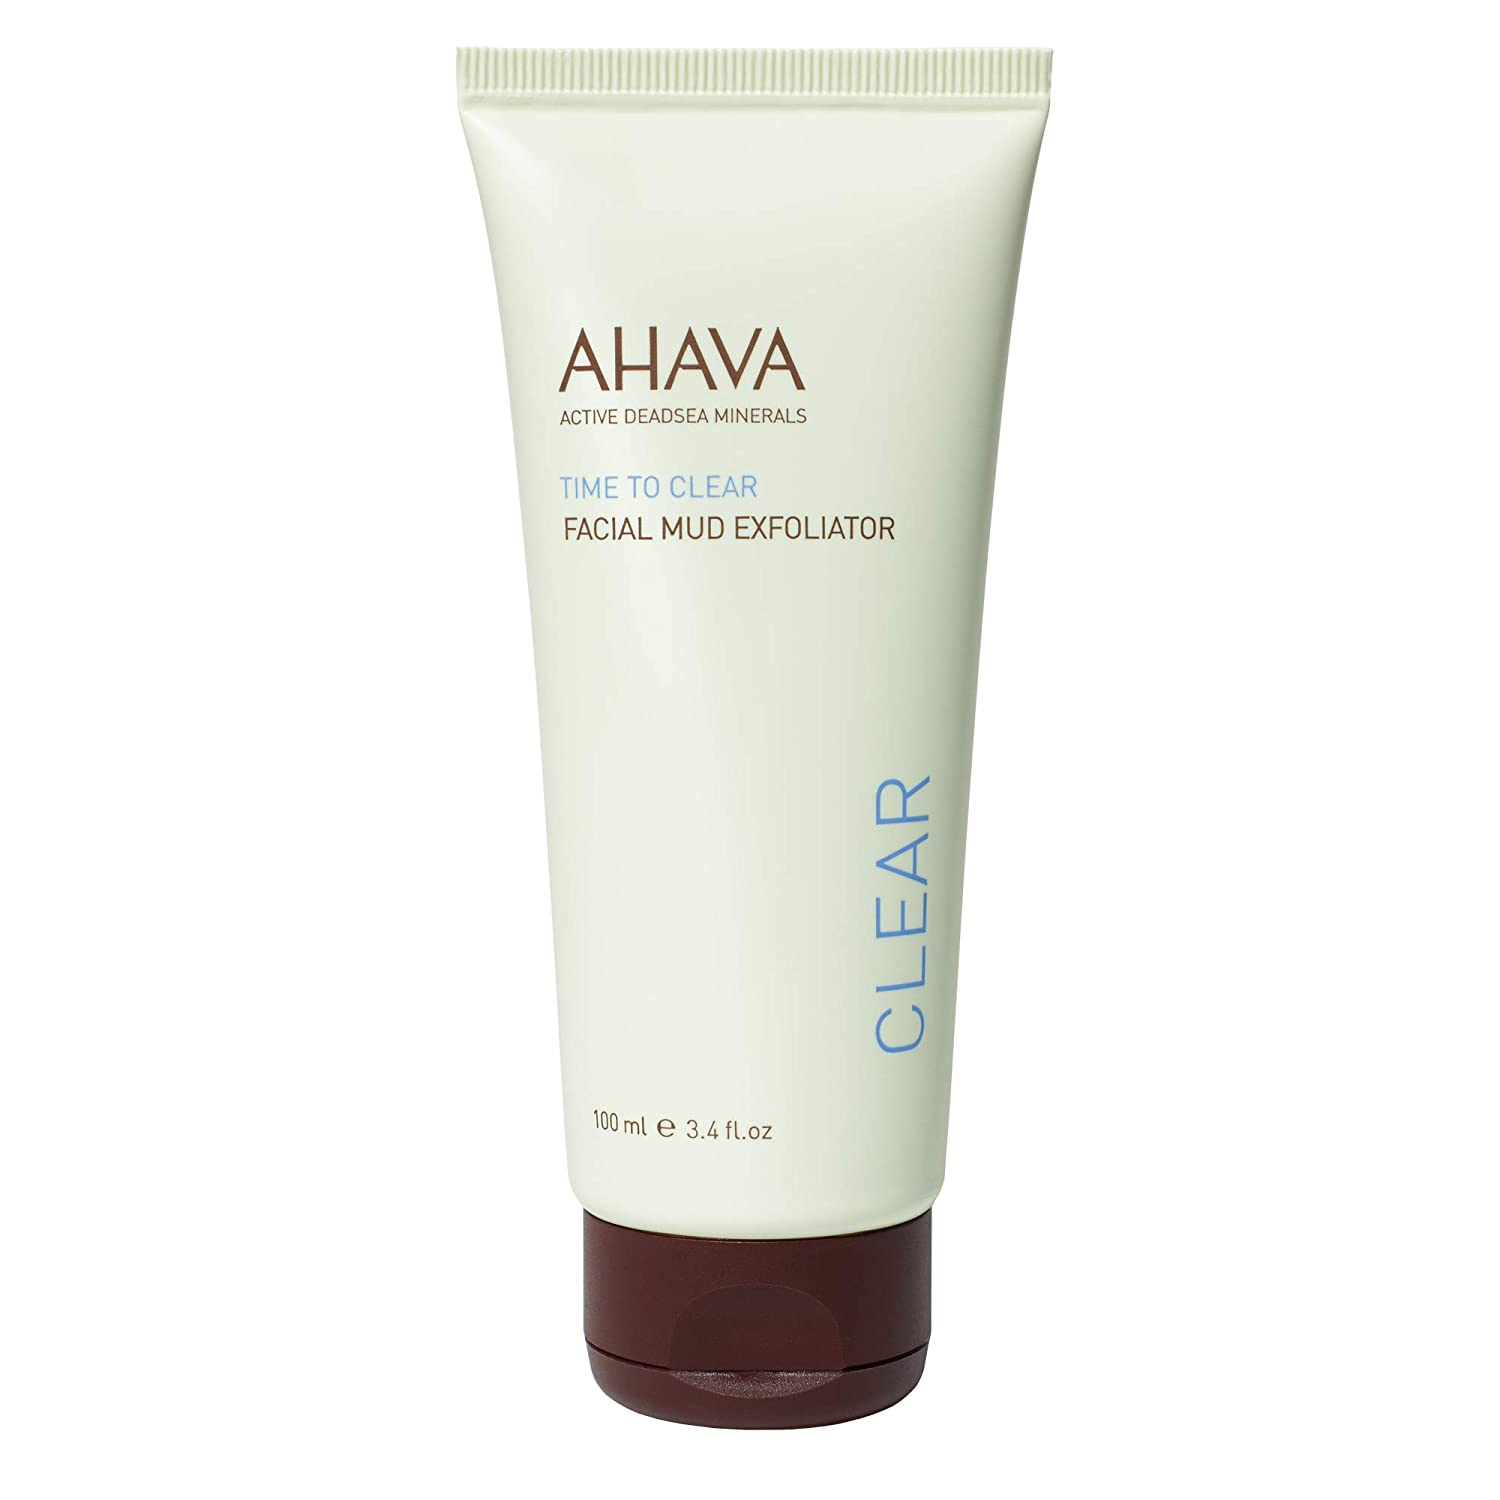 AHAVA Dead Sea Time to Clear Facial Mud Exfoliator, 3.4 Fl Oz